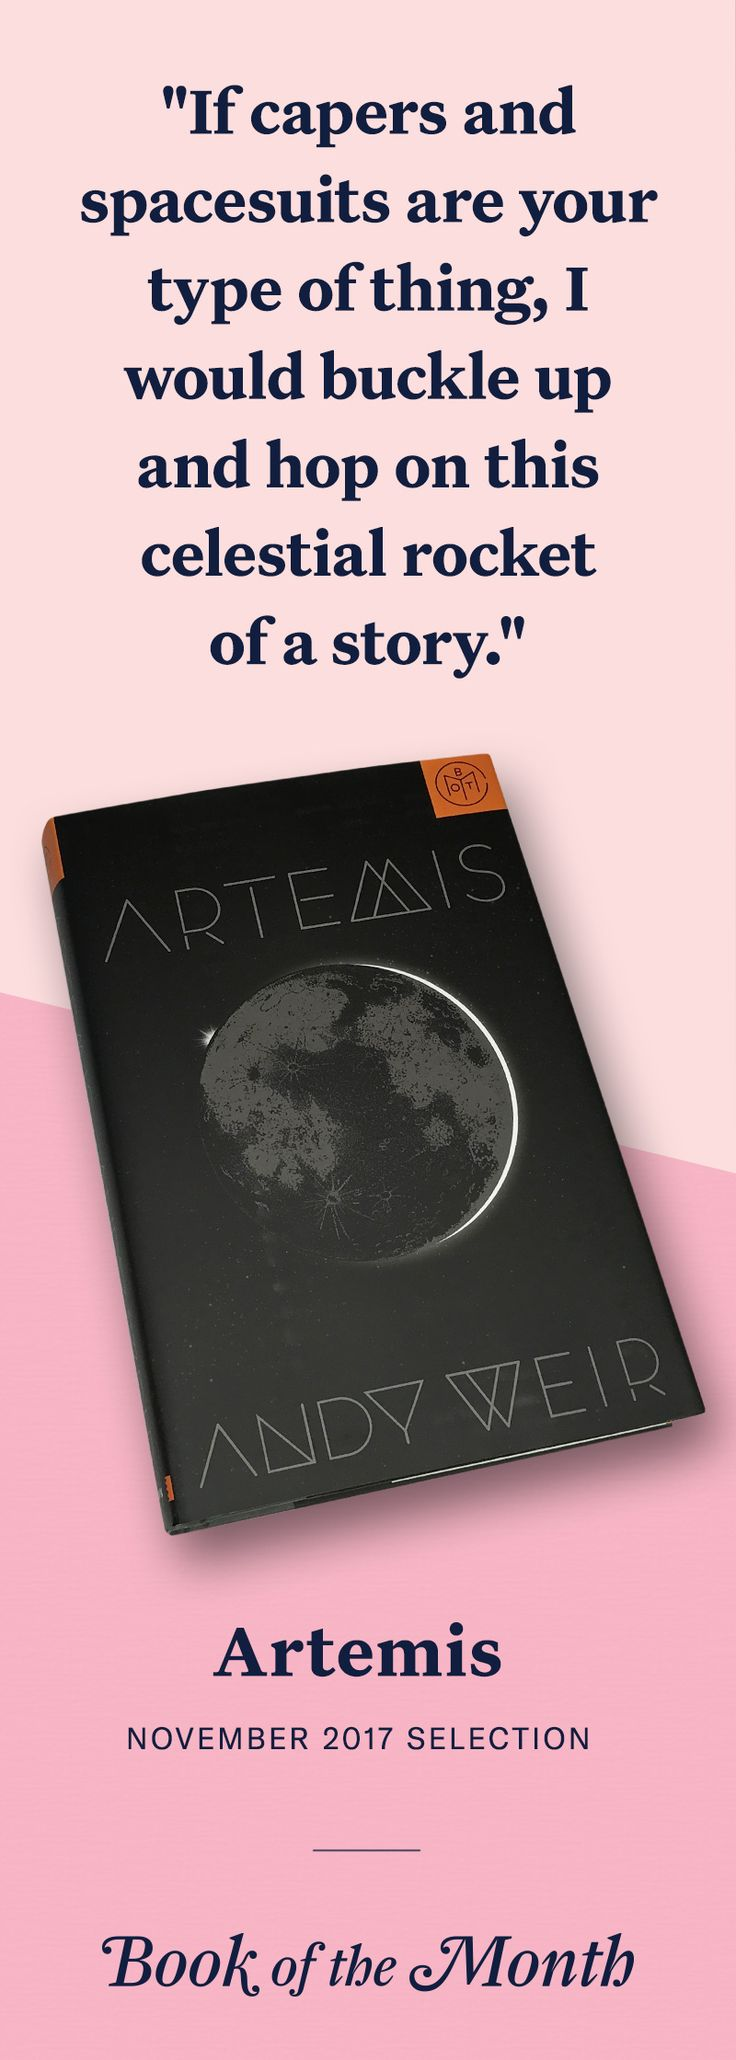 """Artemis"" is one of the best books of November 2017. Head to bookofthemonth.com to learn more and try your first month for free."